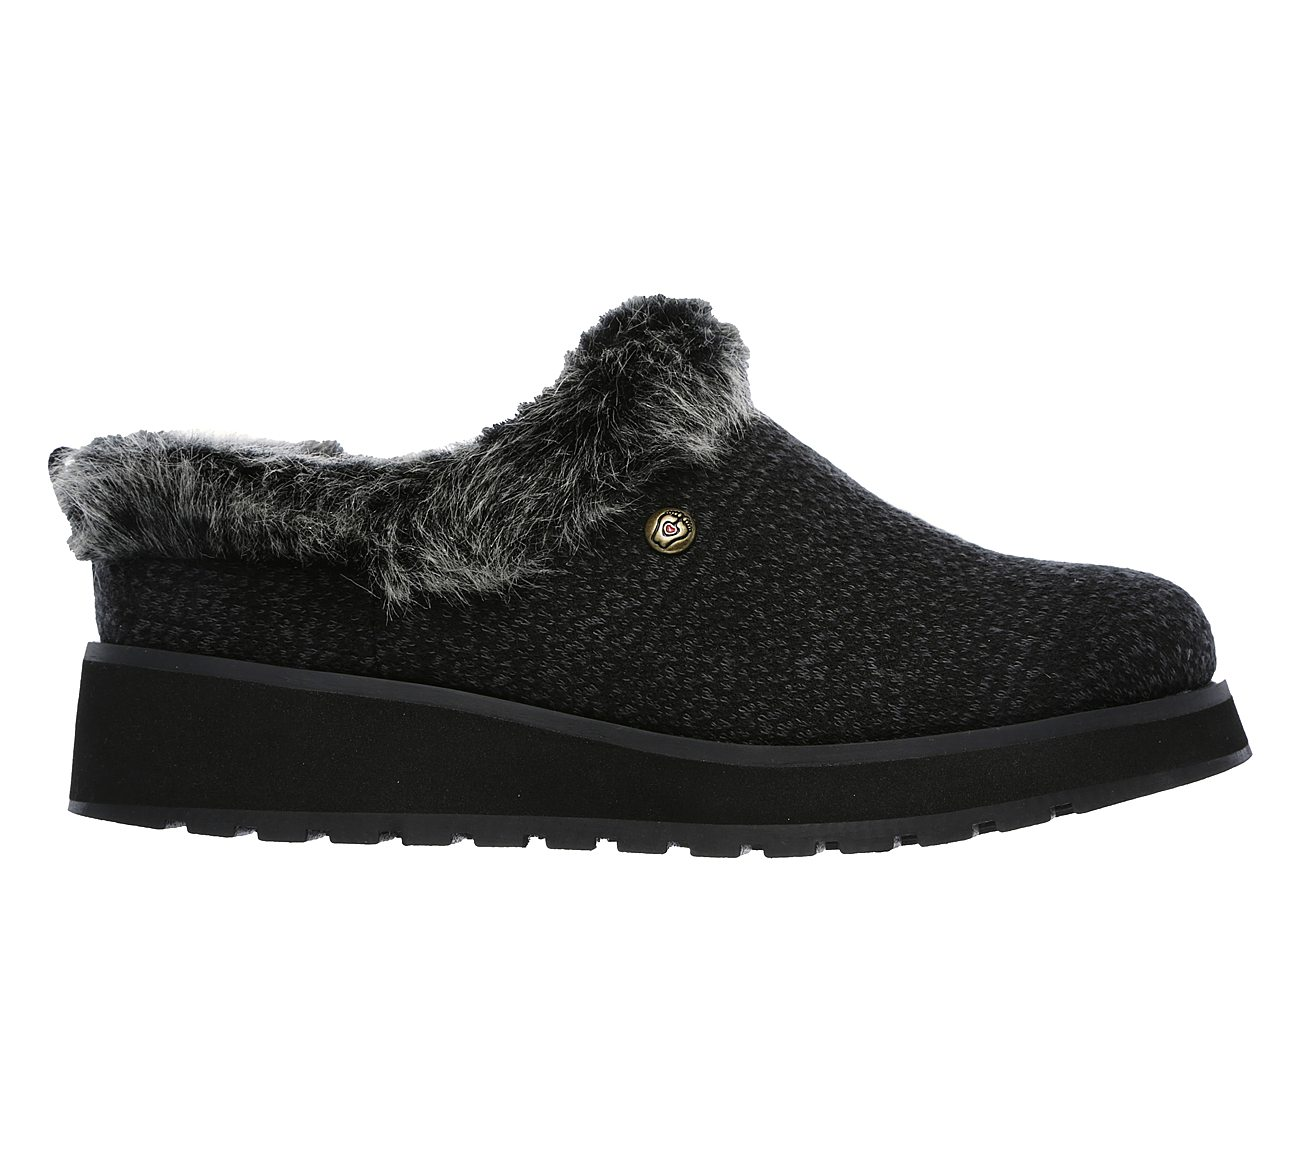 skechers bobs memory foam slippers Skechers Store In Stock